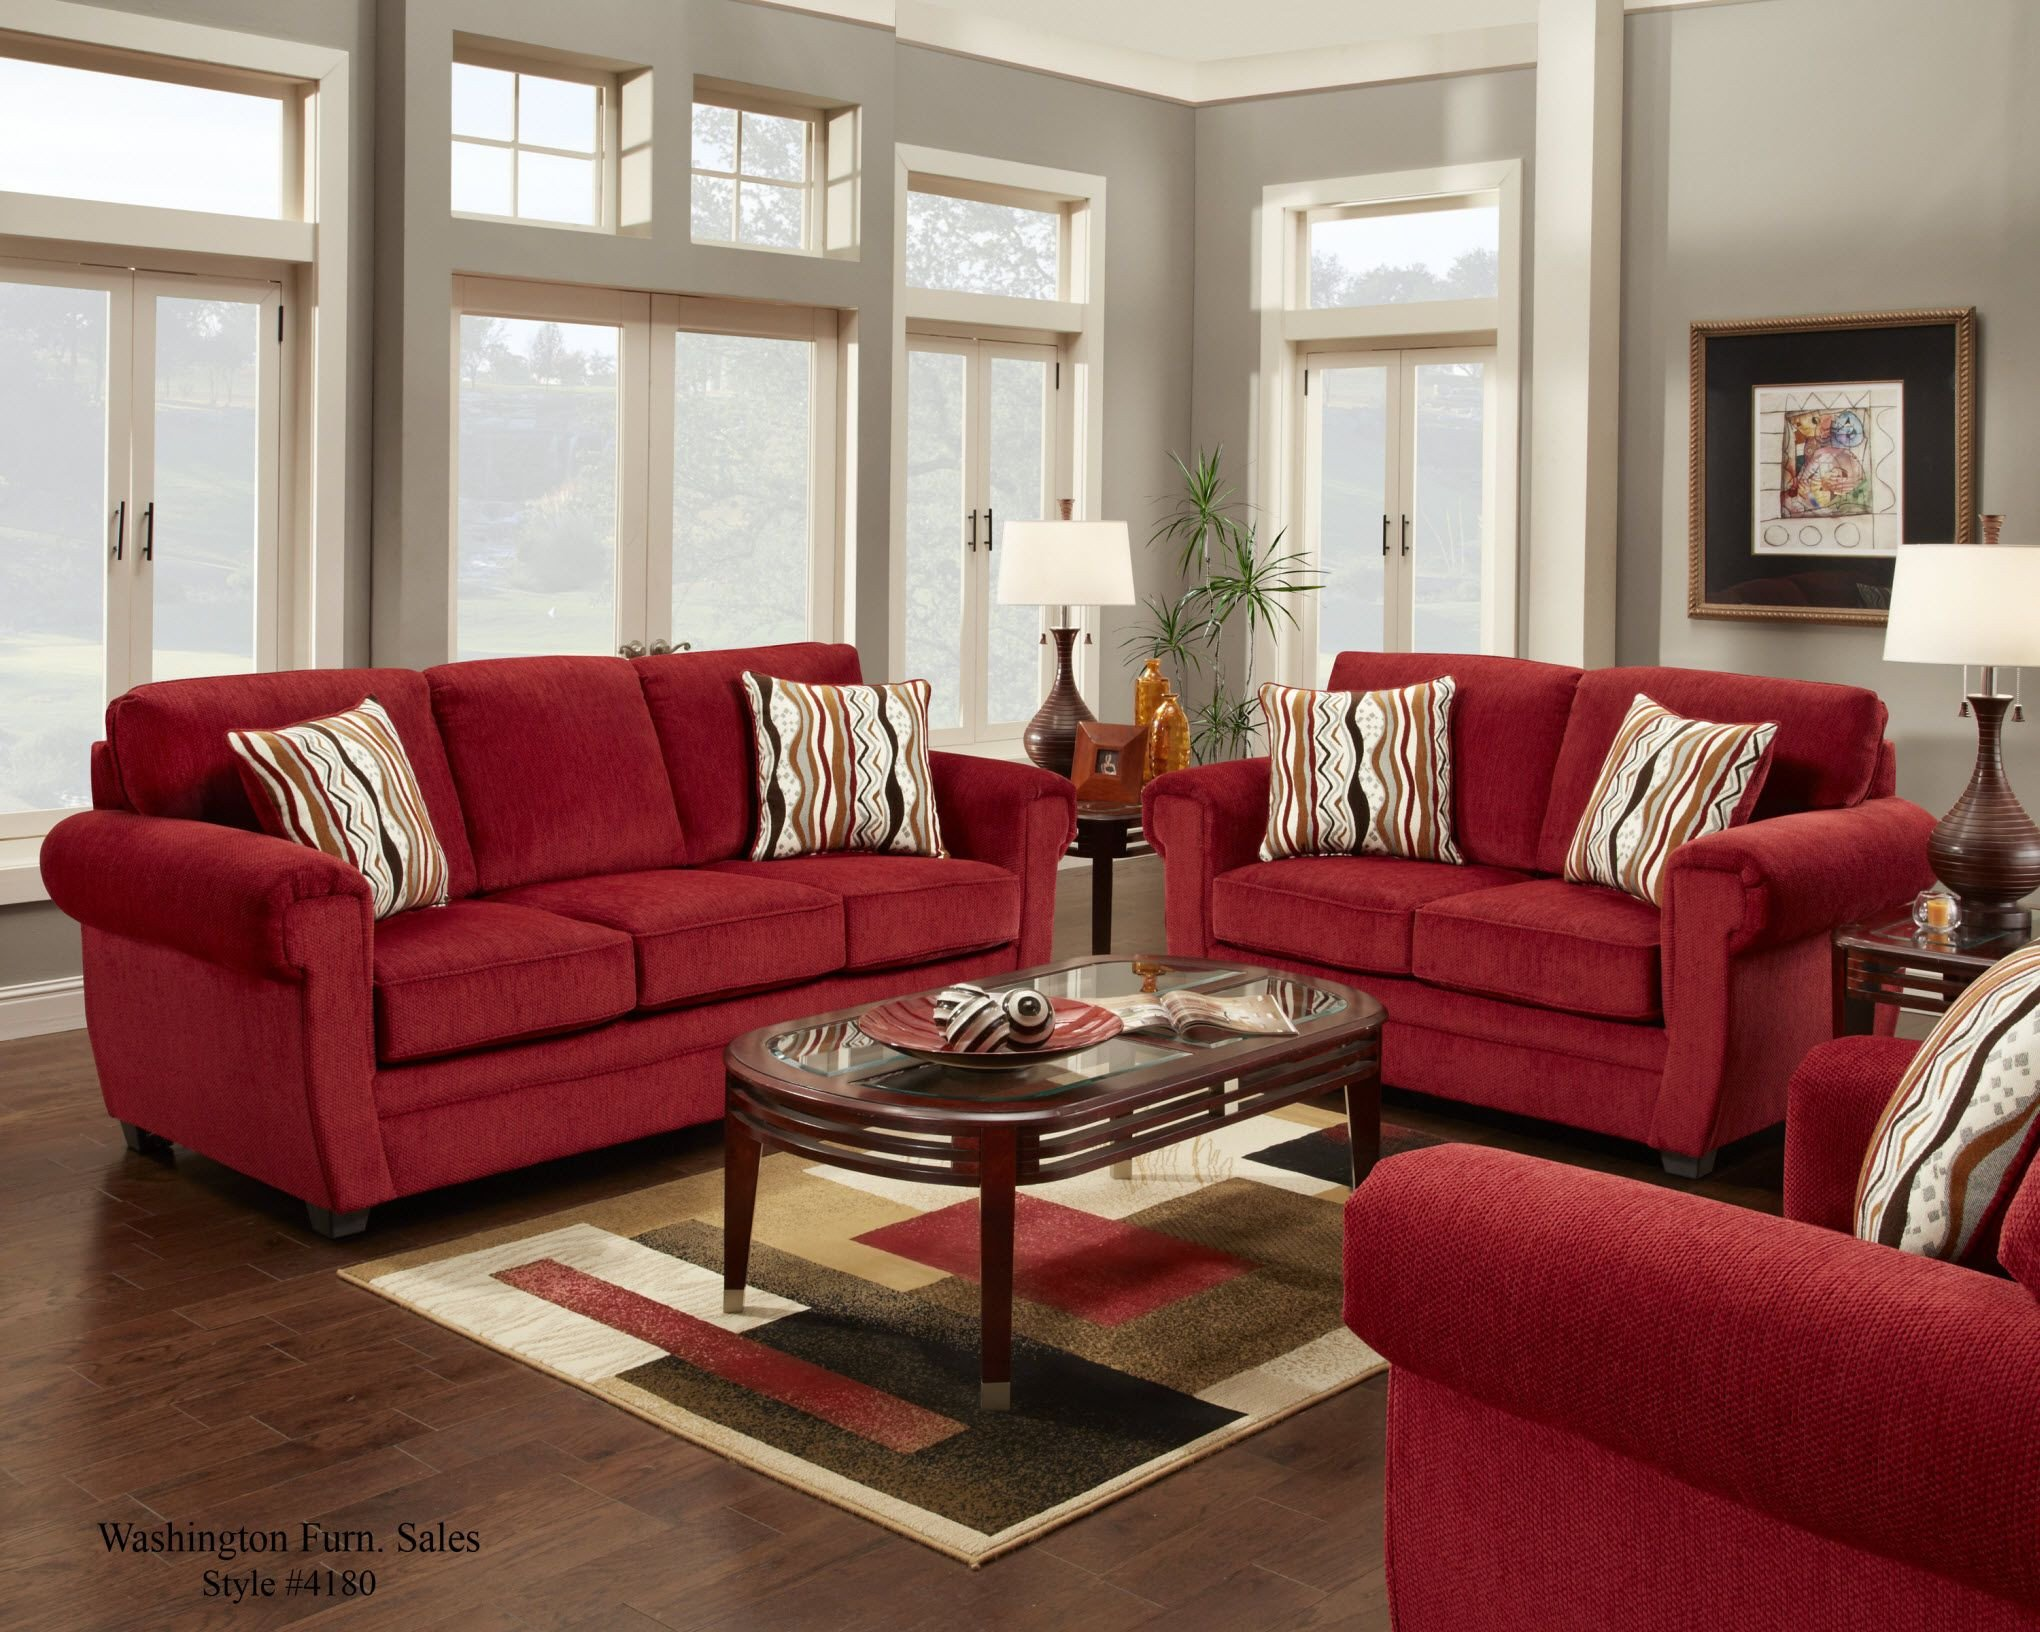 Red Couch Living Room Decor New 4180 Washington Samson Red sofa and Loveseat